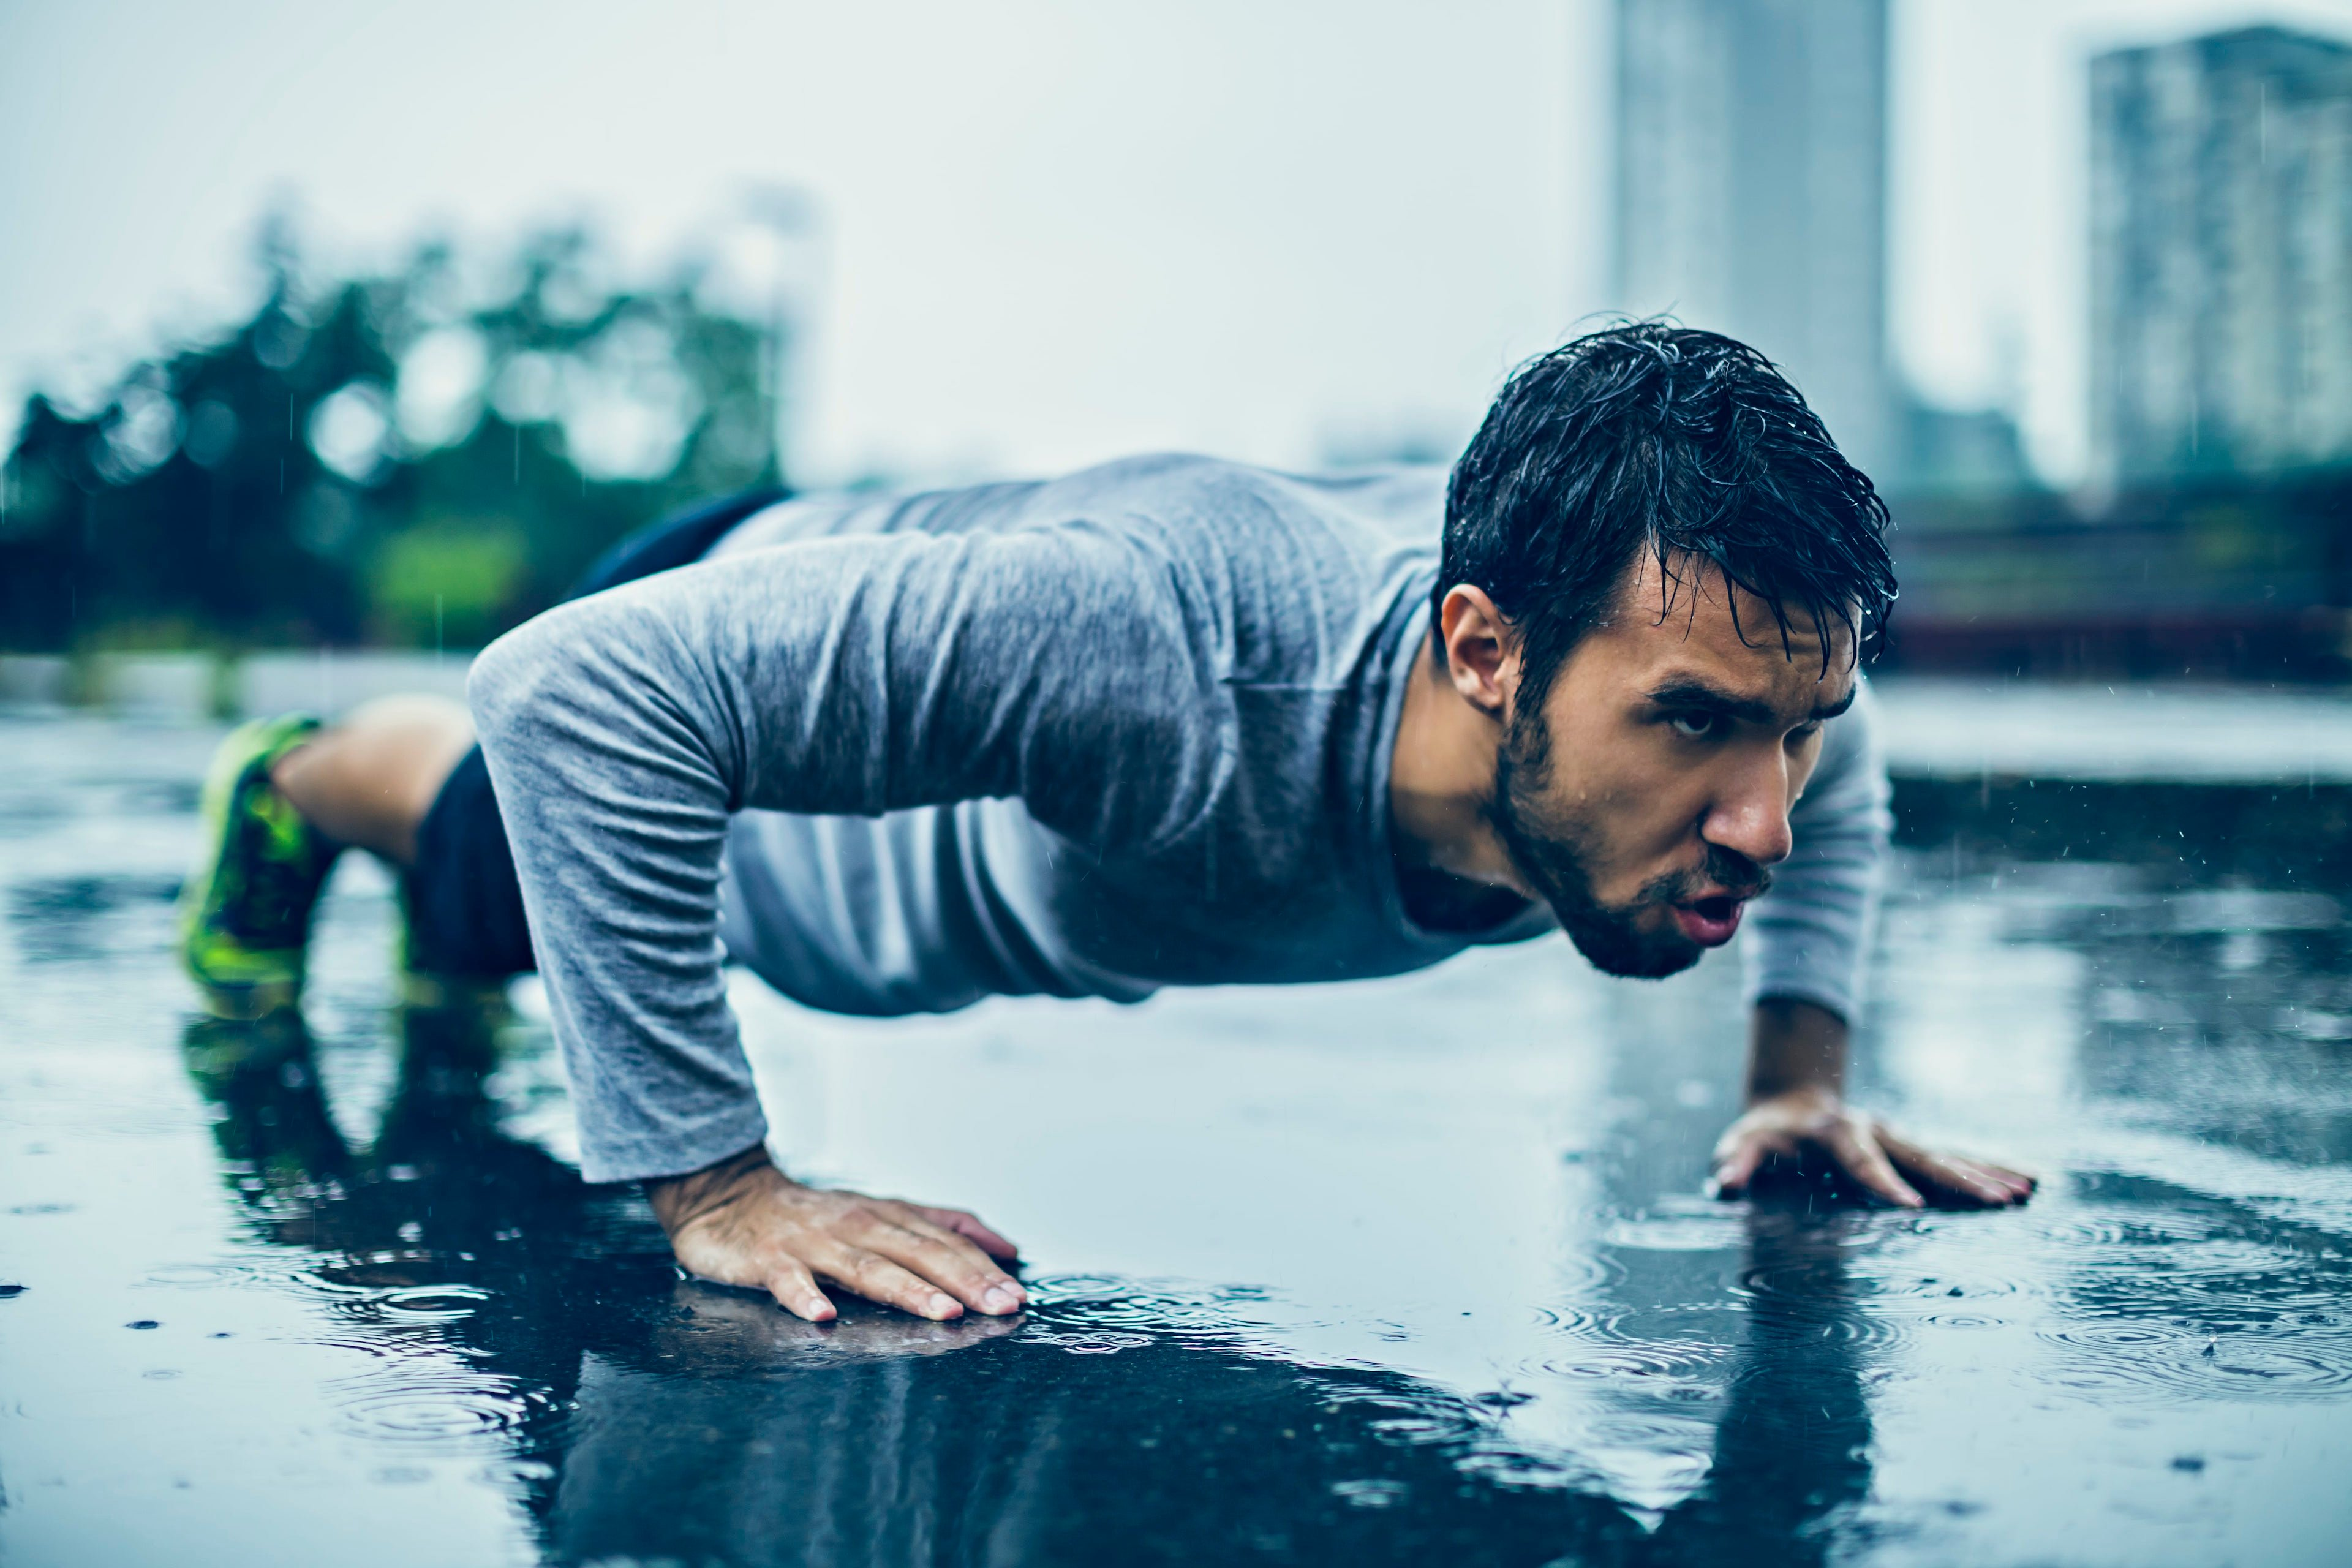 Man exercising in the rain